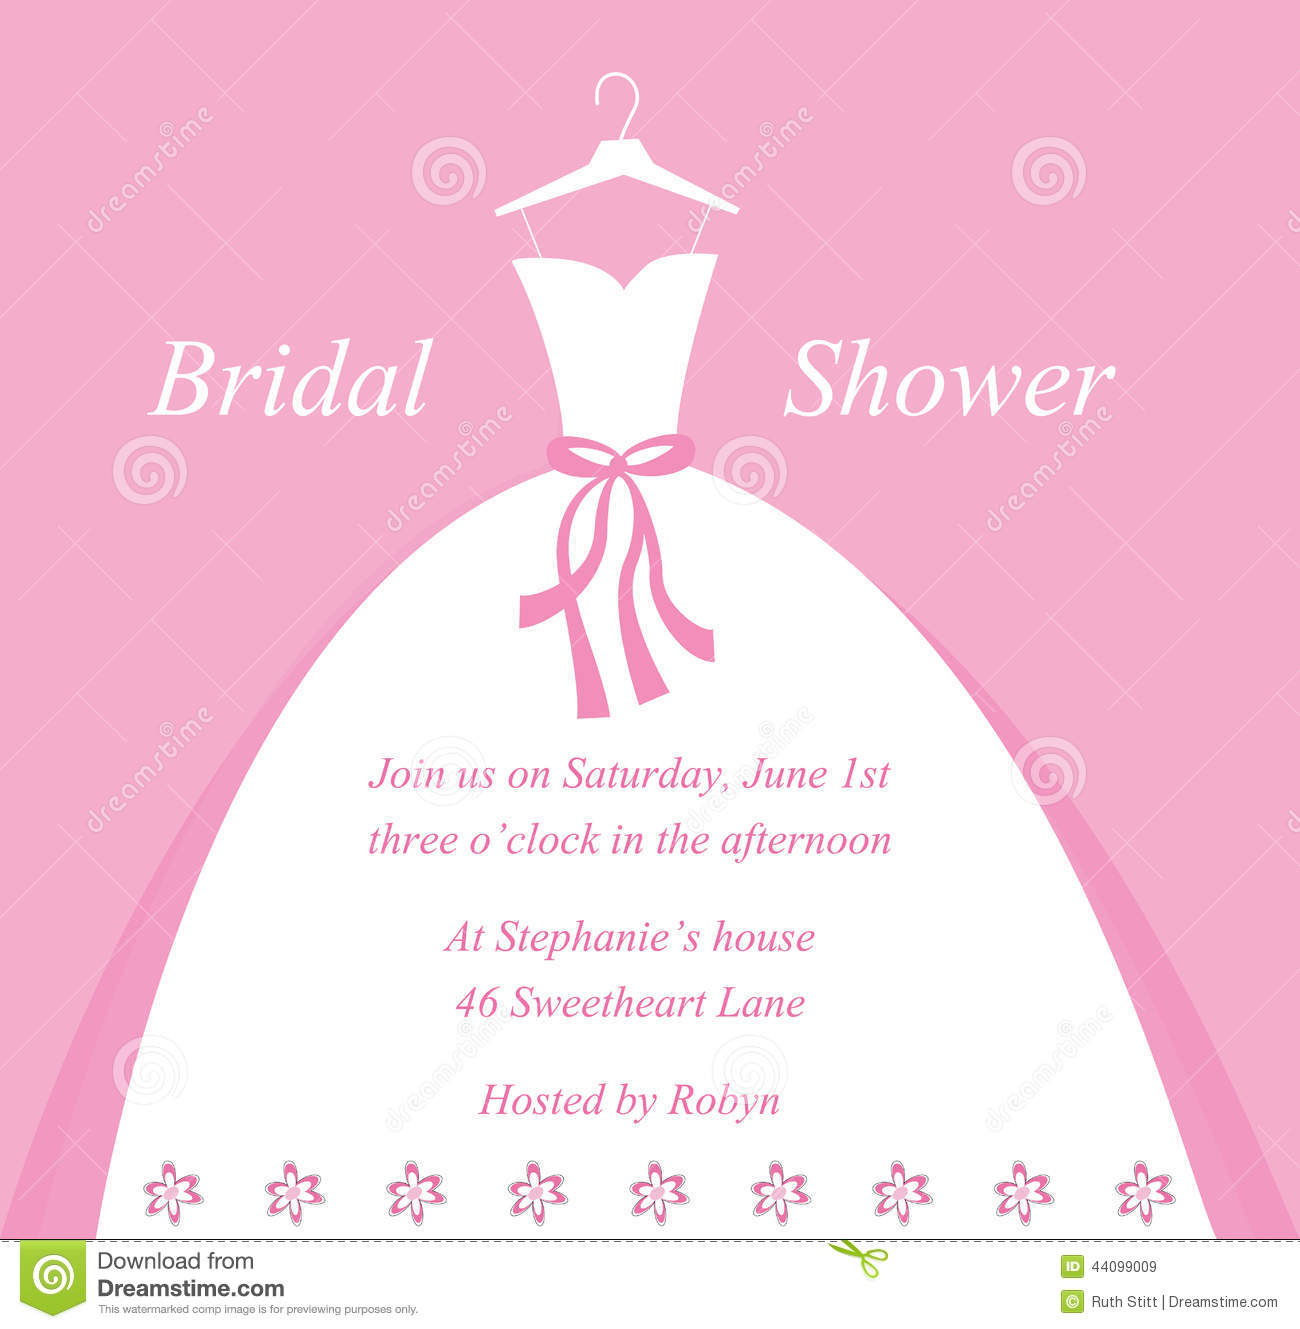 Free Clip Art for Bridal Shower Invitations – Clipart Download